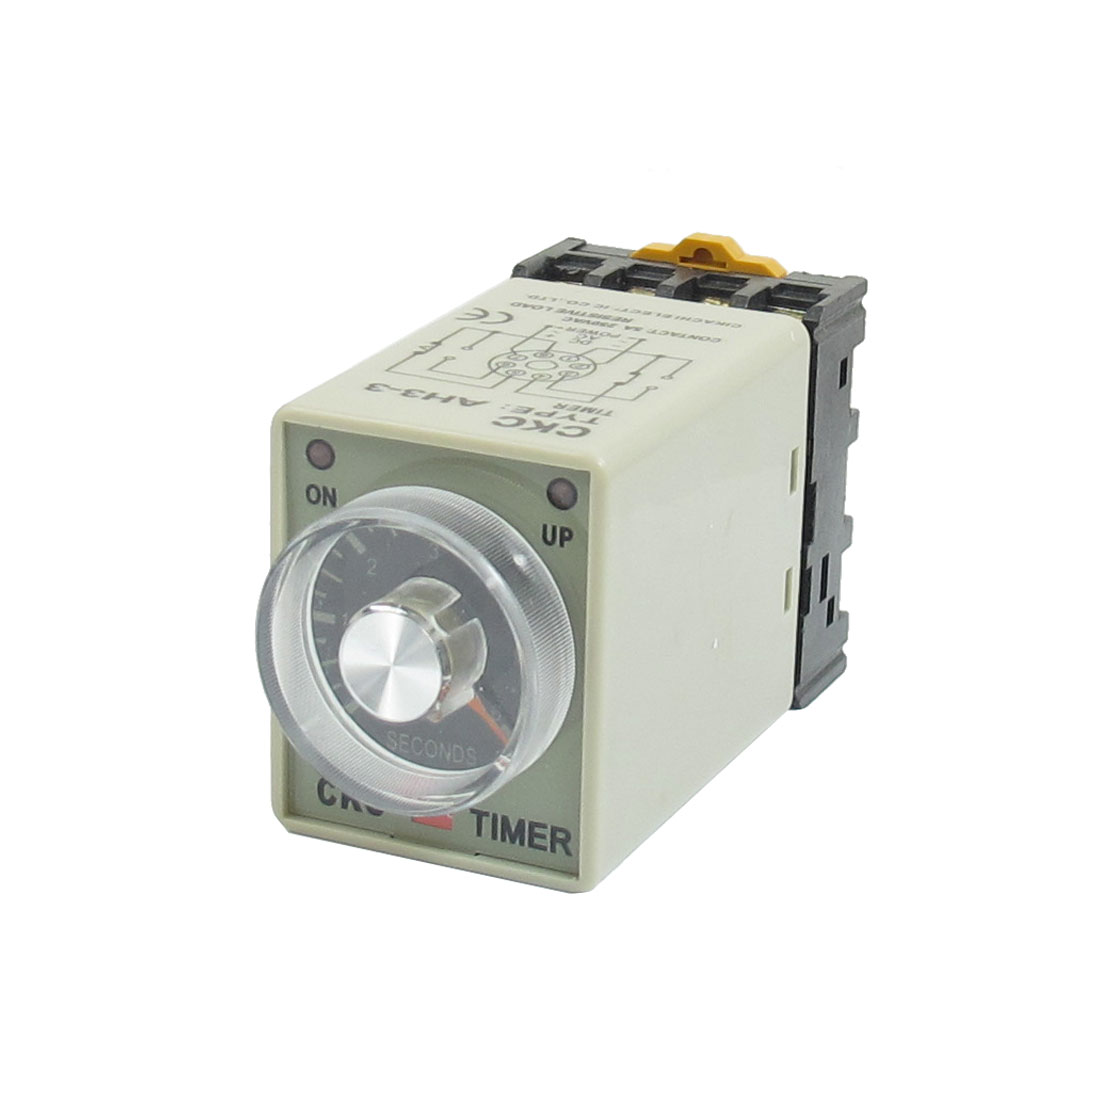 AH3-3 12VDC 0-6 Seconds Timer Power ON Delay Time Relay DPDT 8 Pin w Base